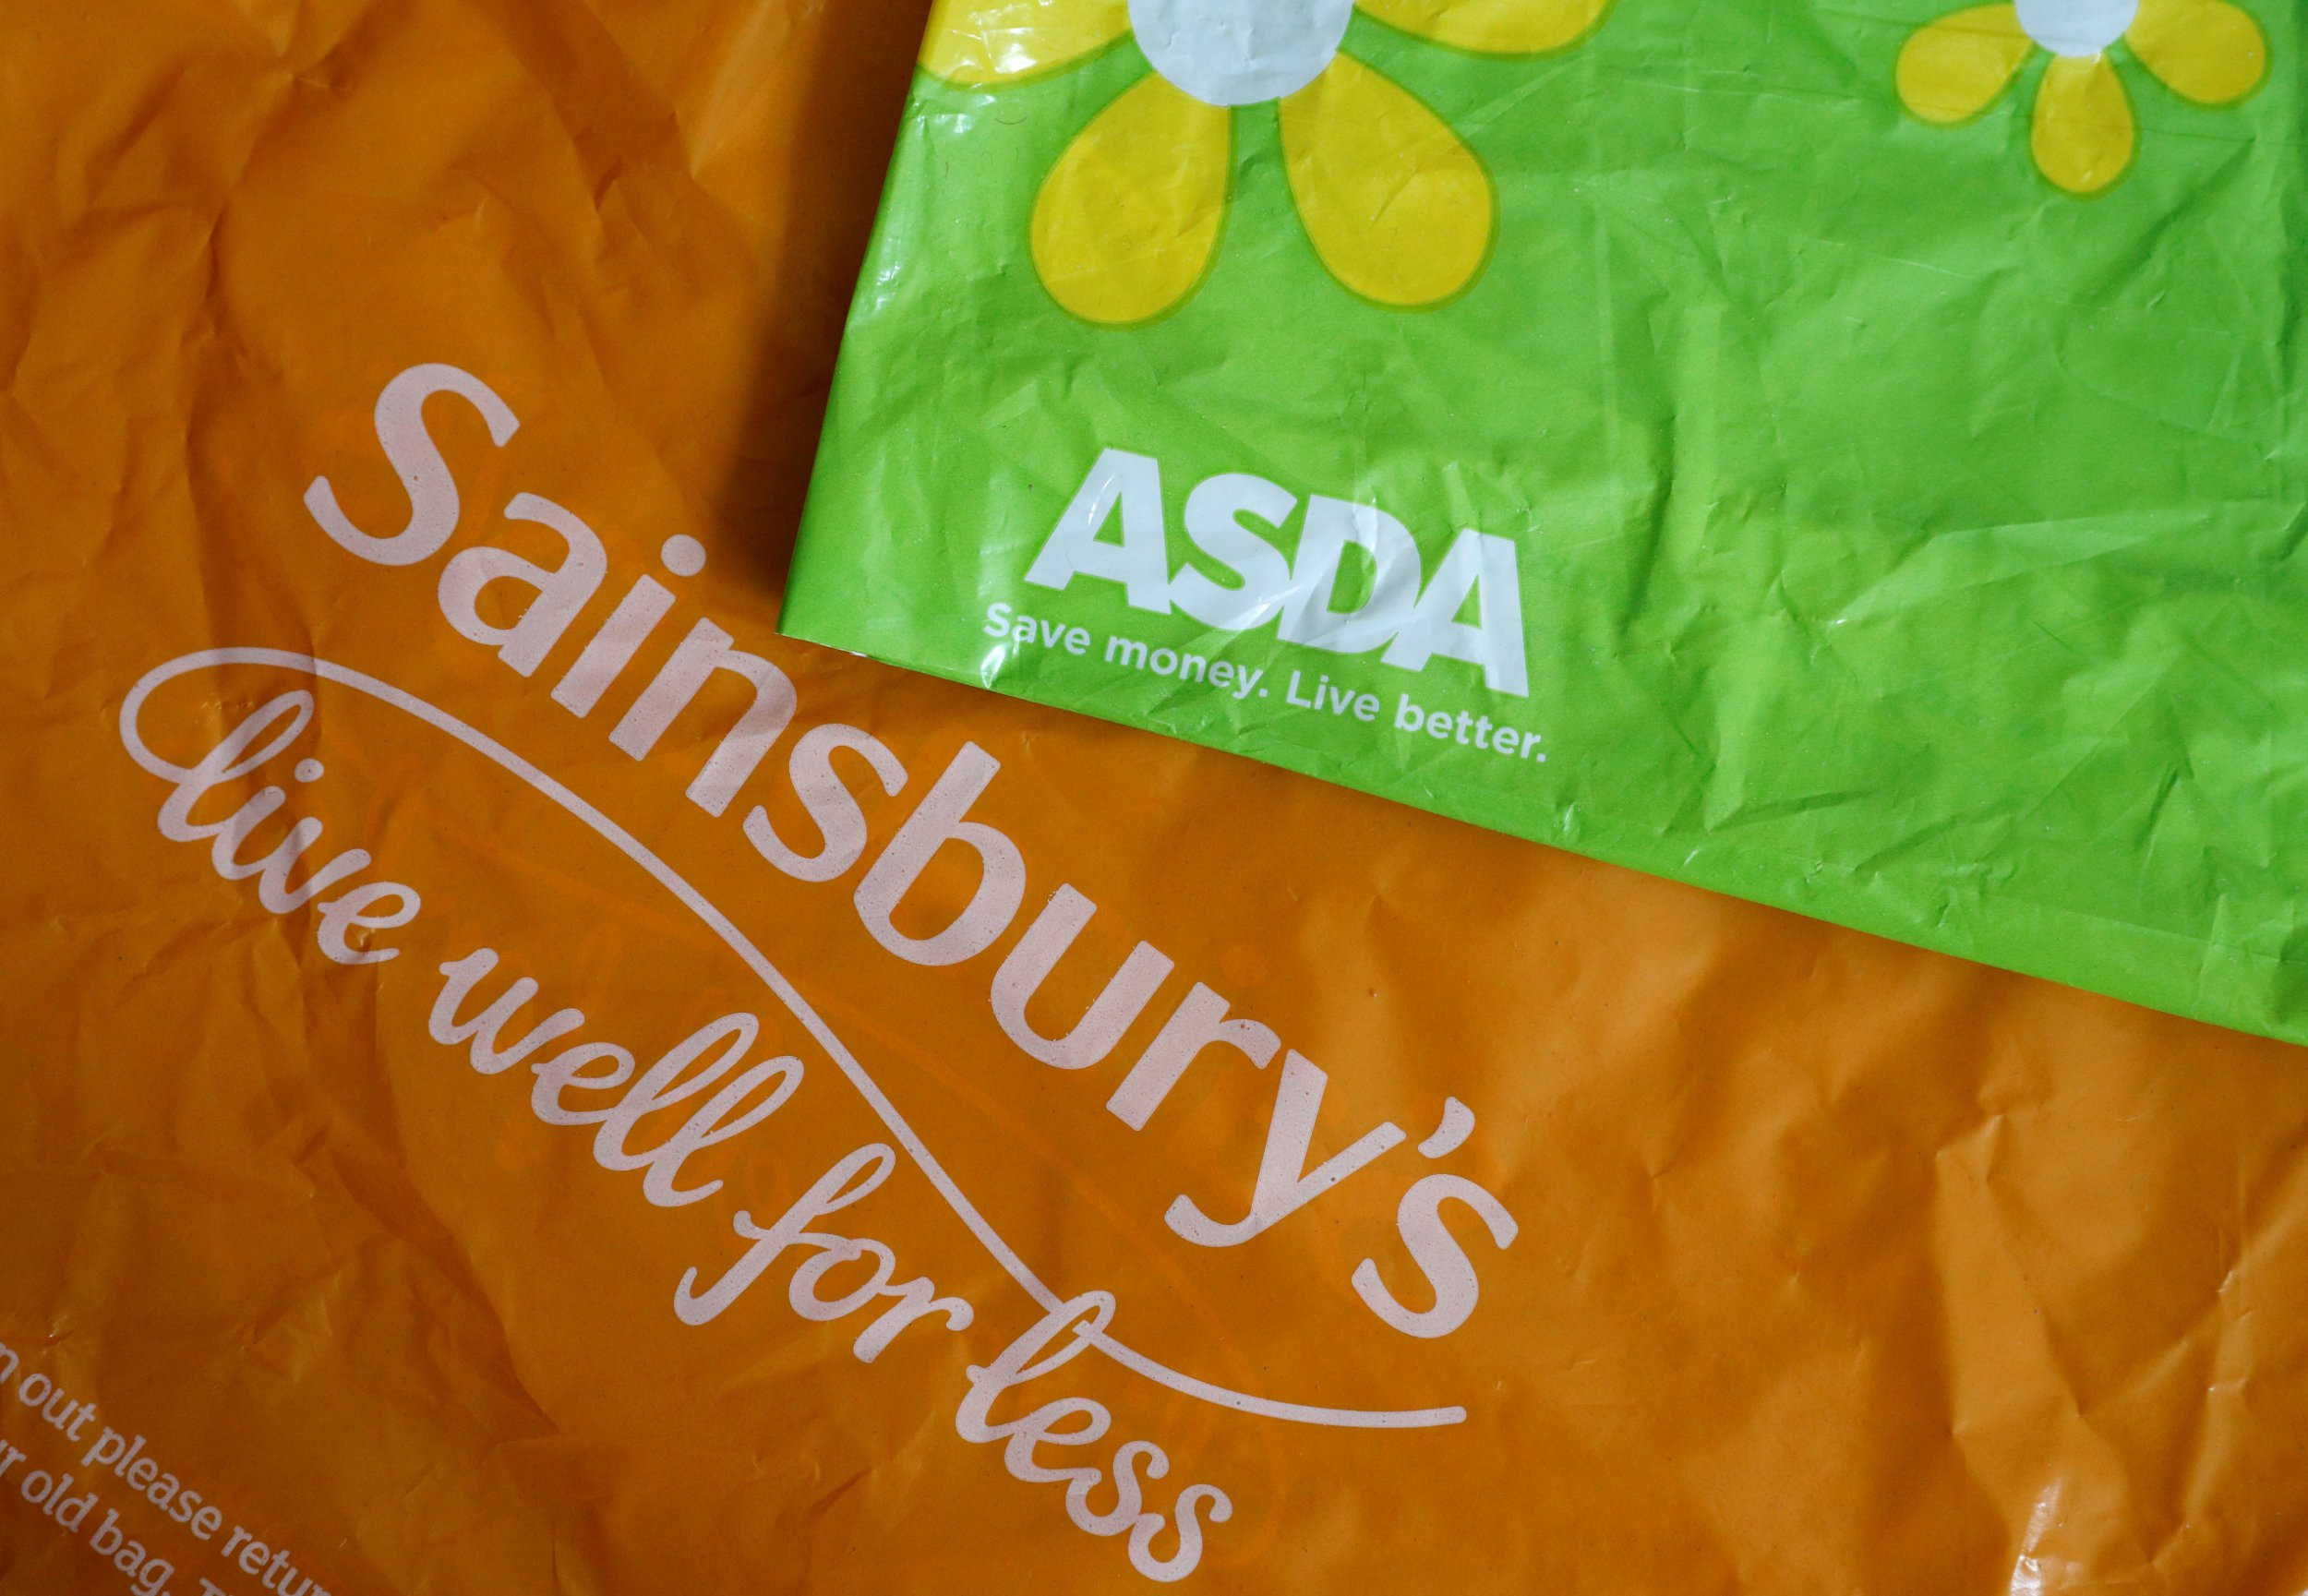 Sainsbury's and Asda offer to sell 150 stores to quell fears of rising prices